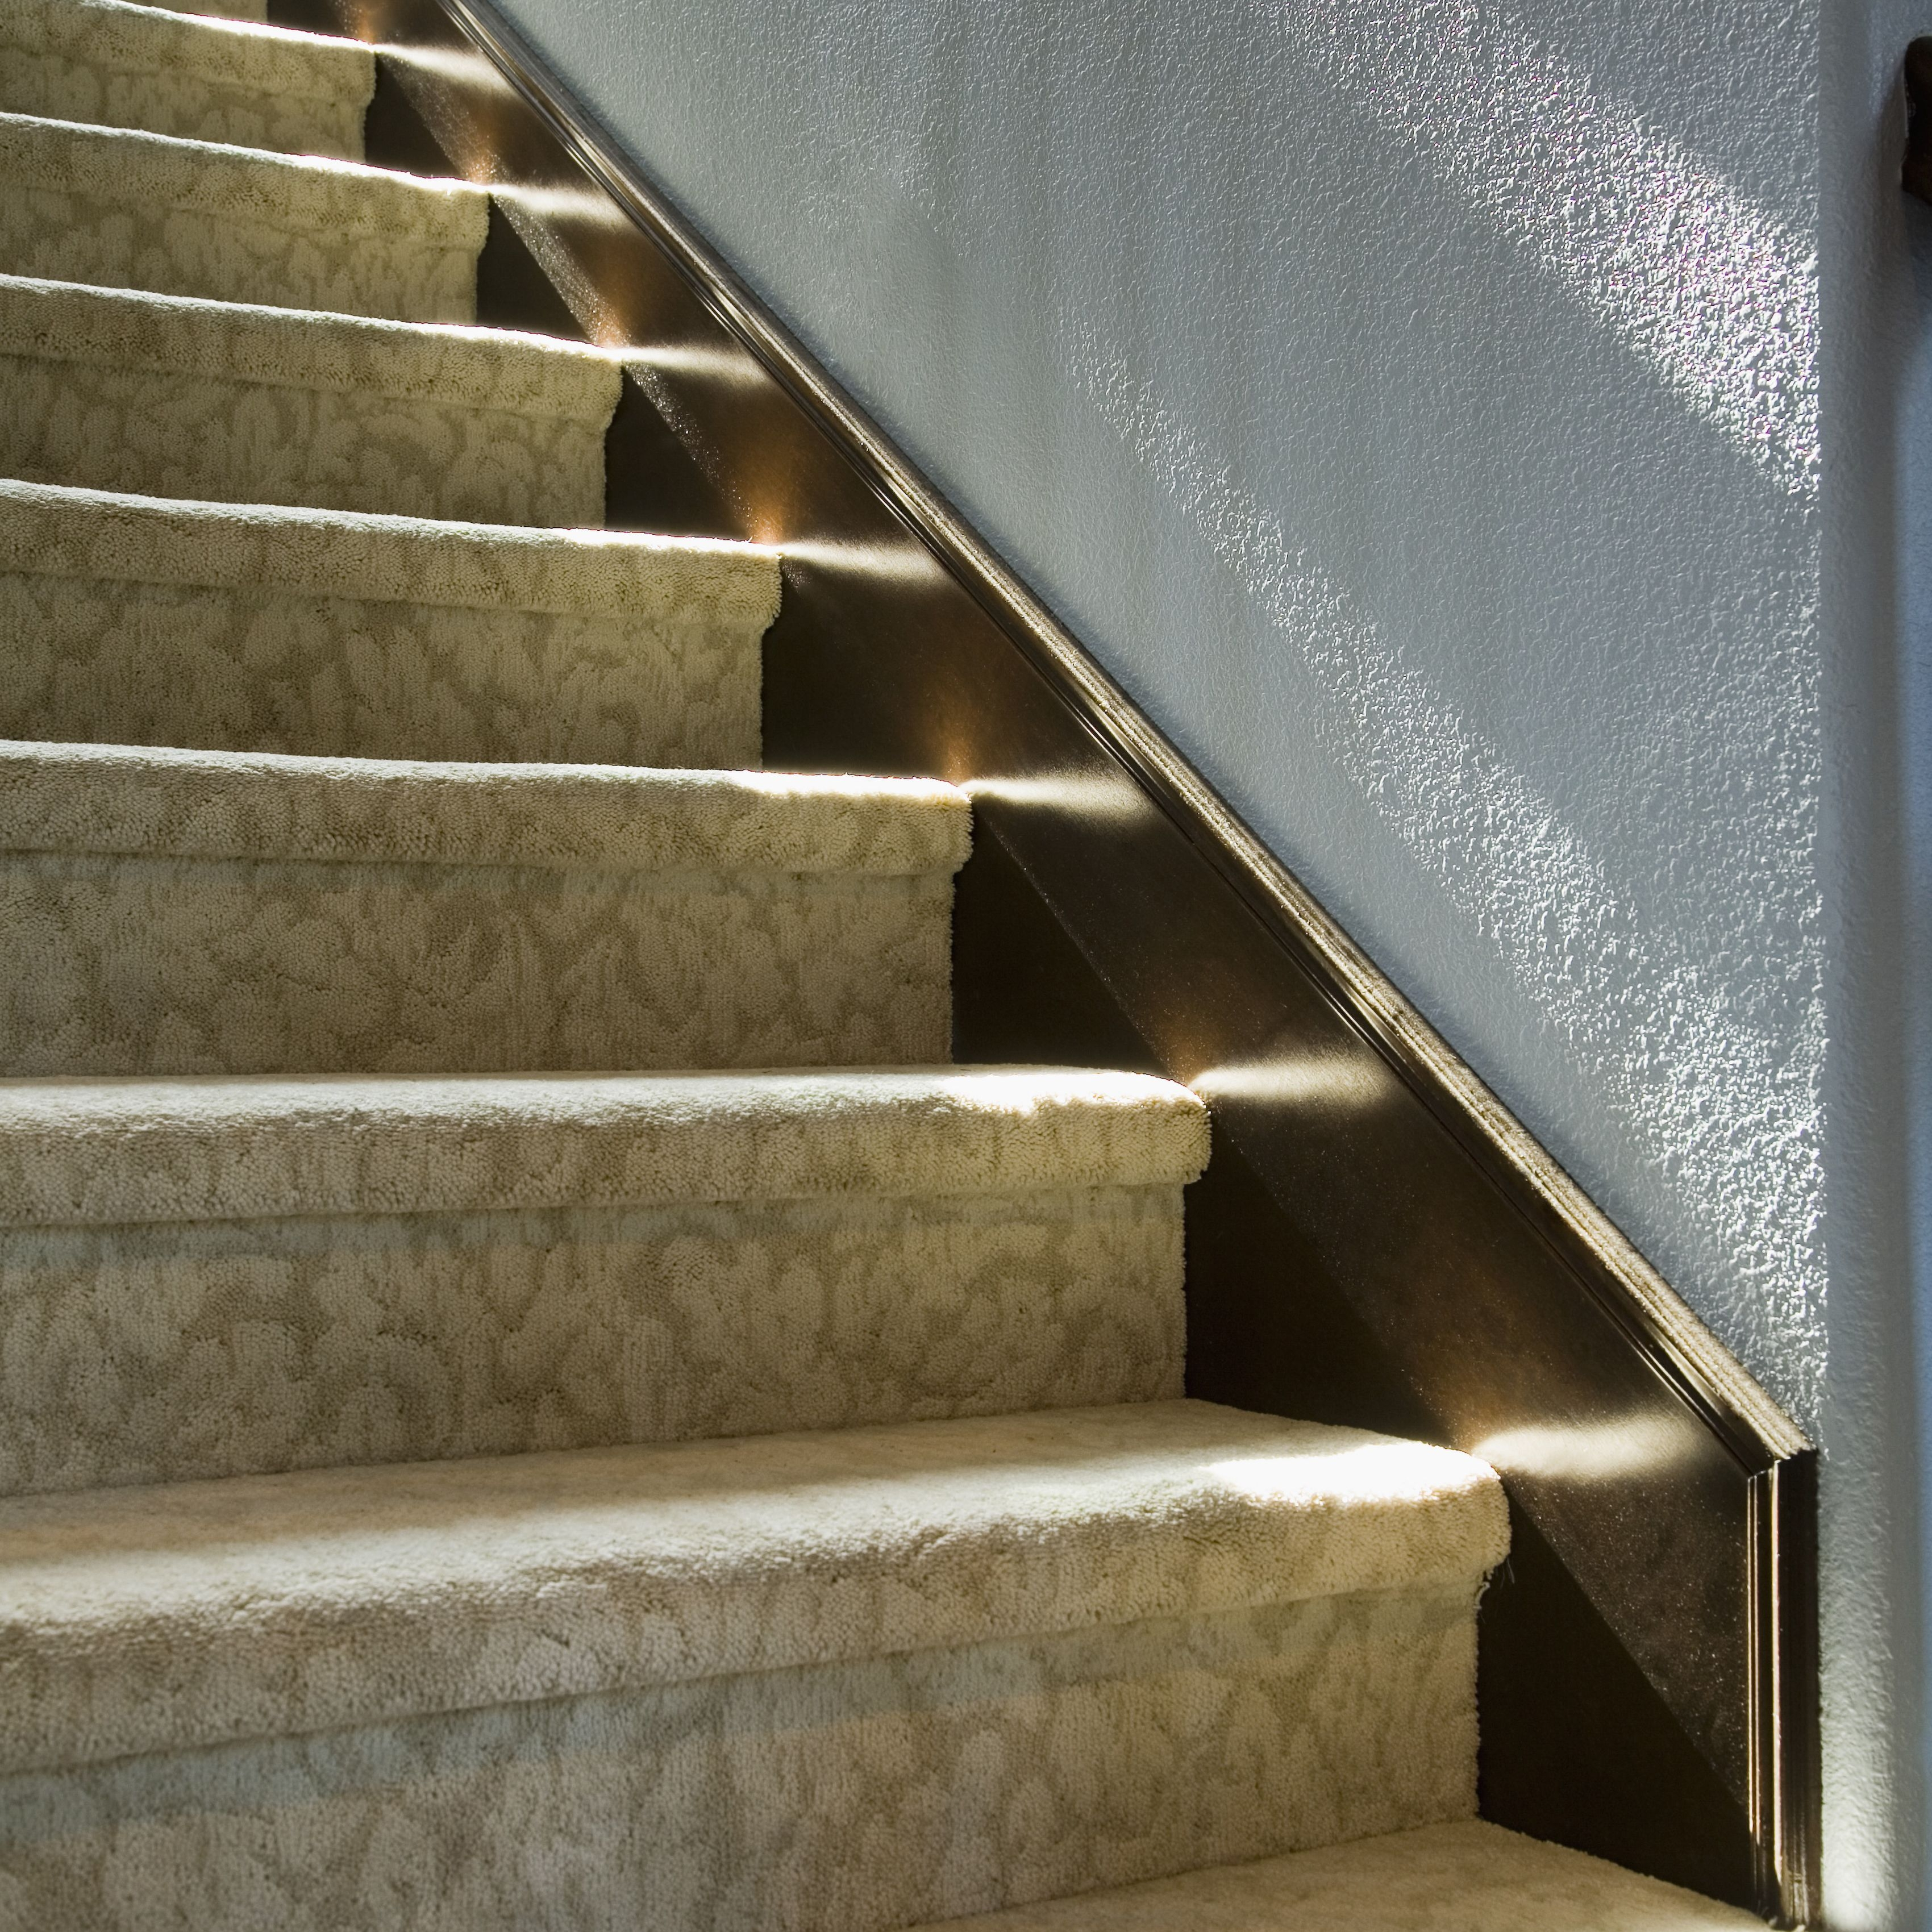 Measuring And Calculating Carpet For Stairs   Stair Carpet Installation Cost   Flooring   Stair Case   Square Yard   Average Cost   Sq Ft